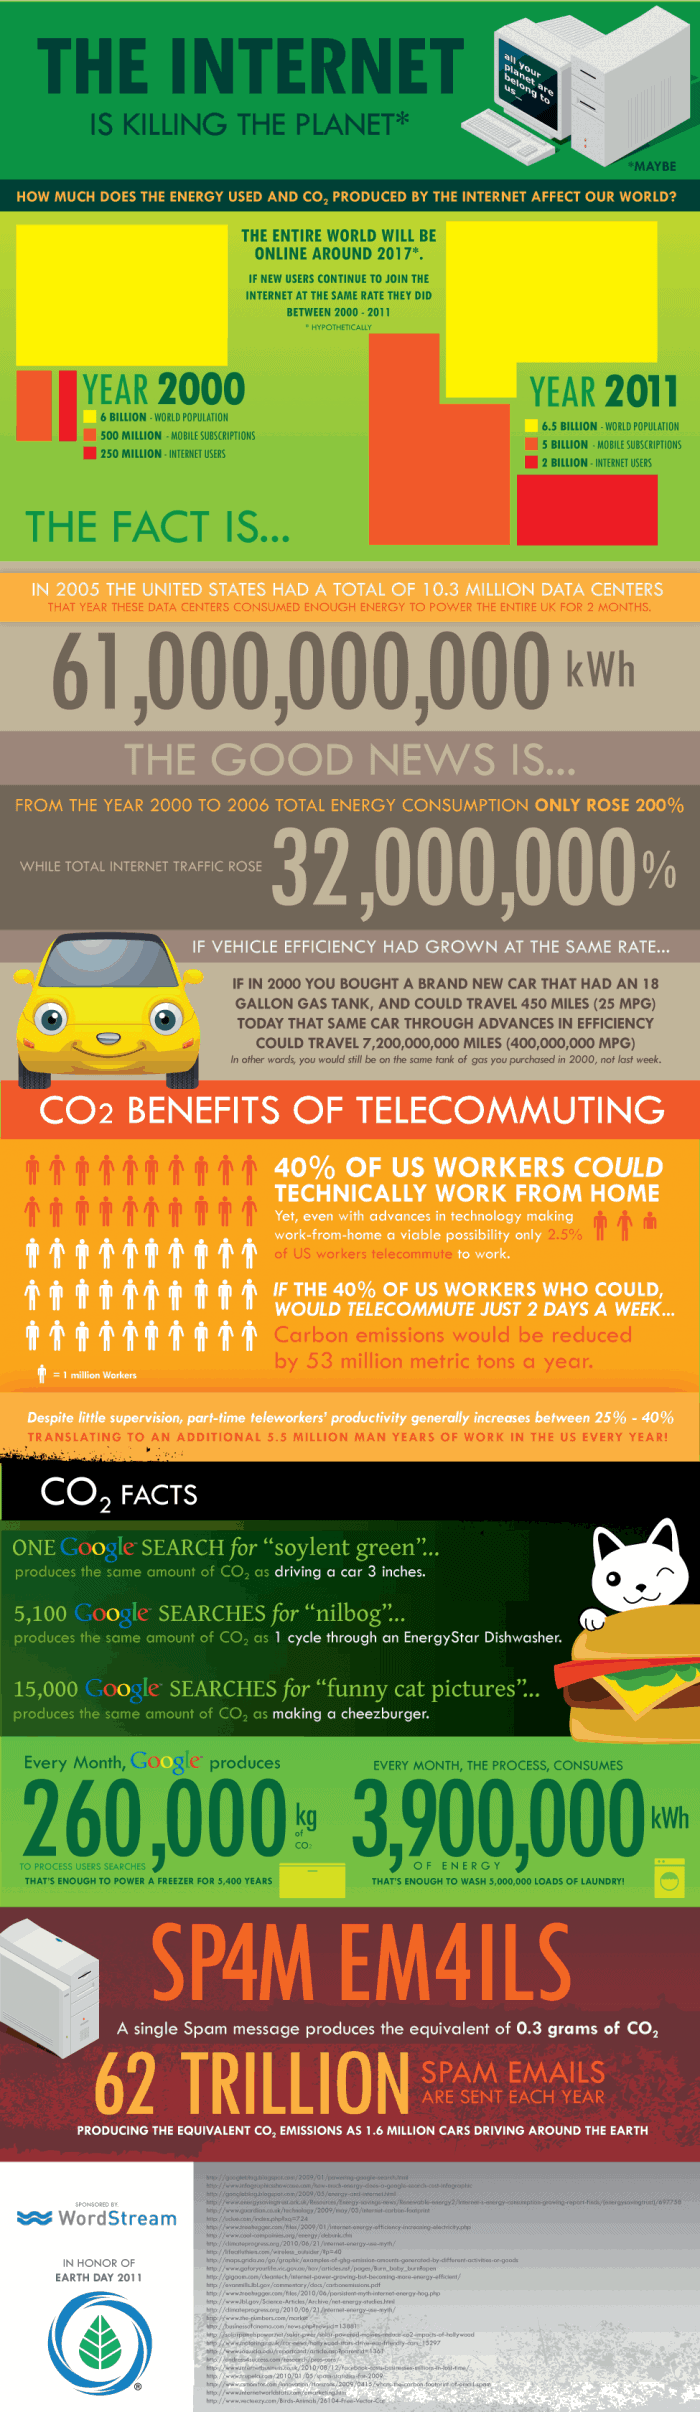 earth-day-internet-infographic